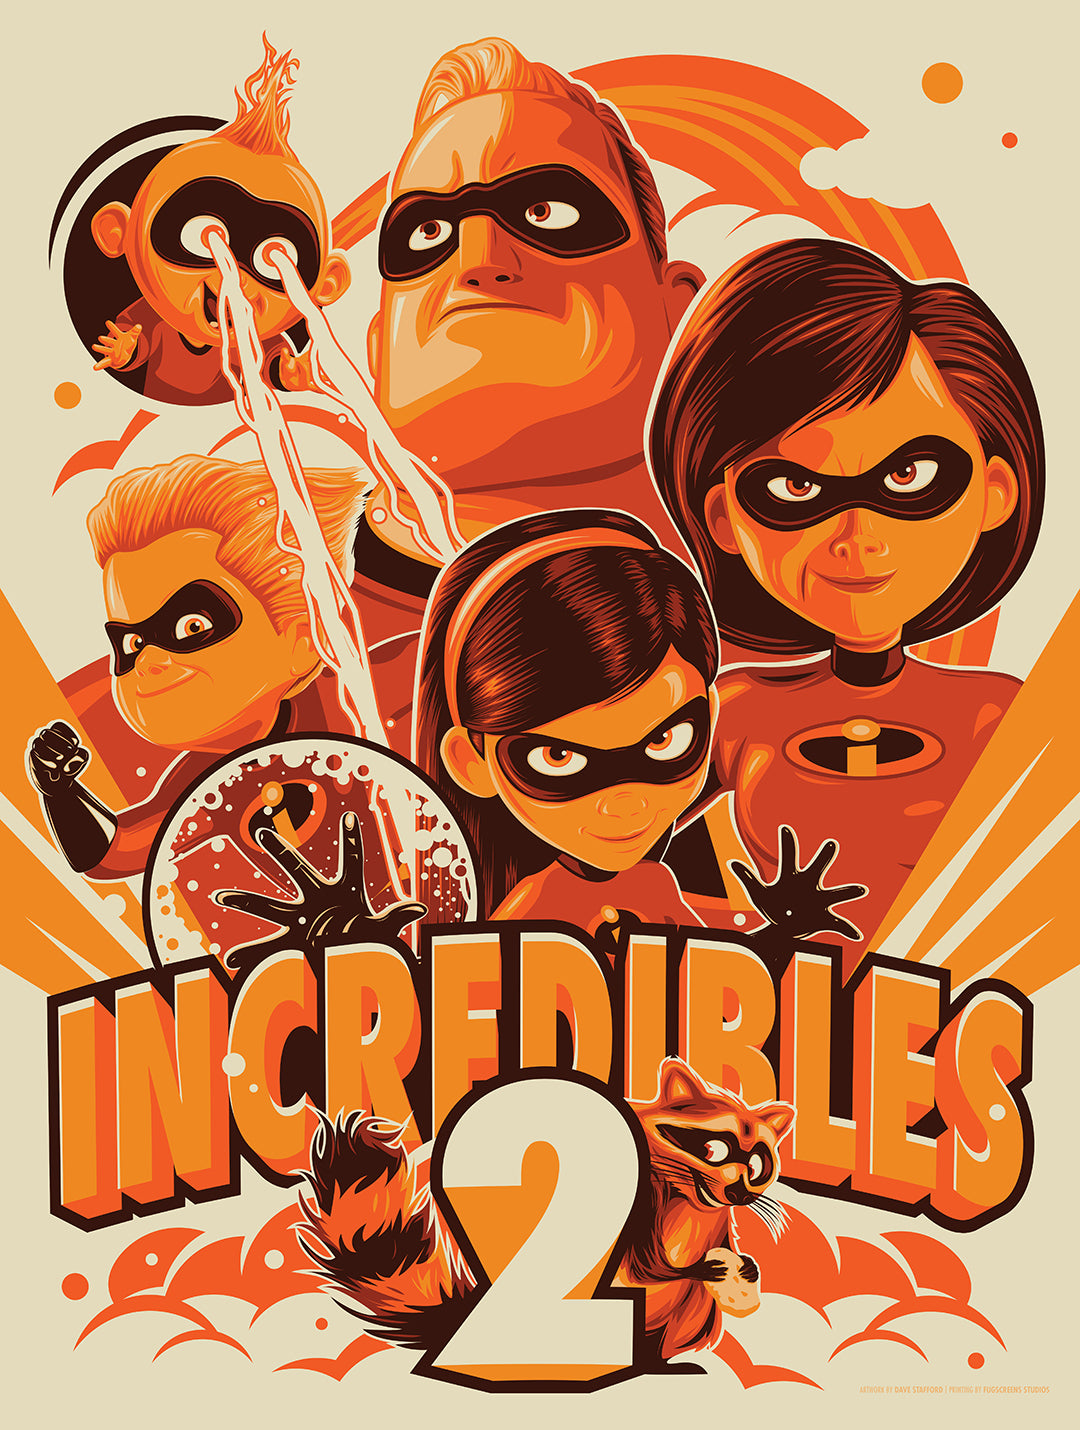 Incredibles 2 Poster by Dave Stafford